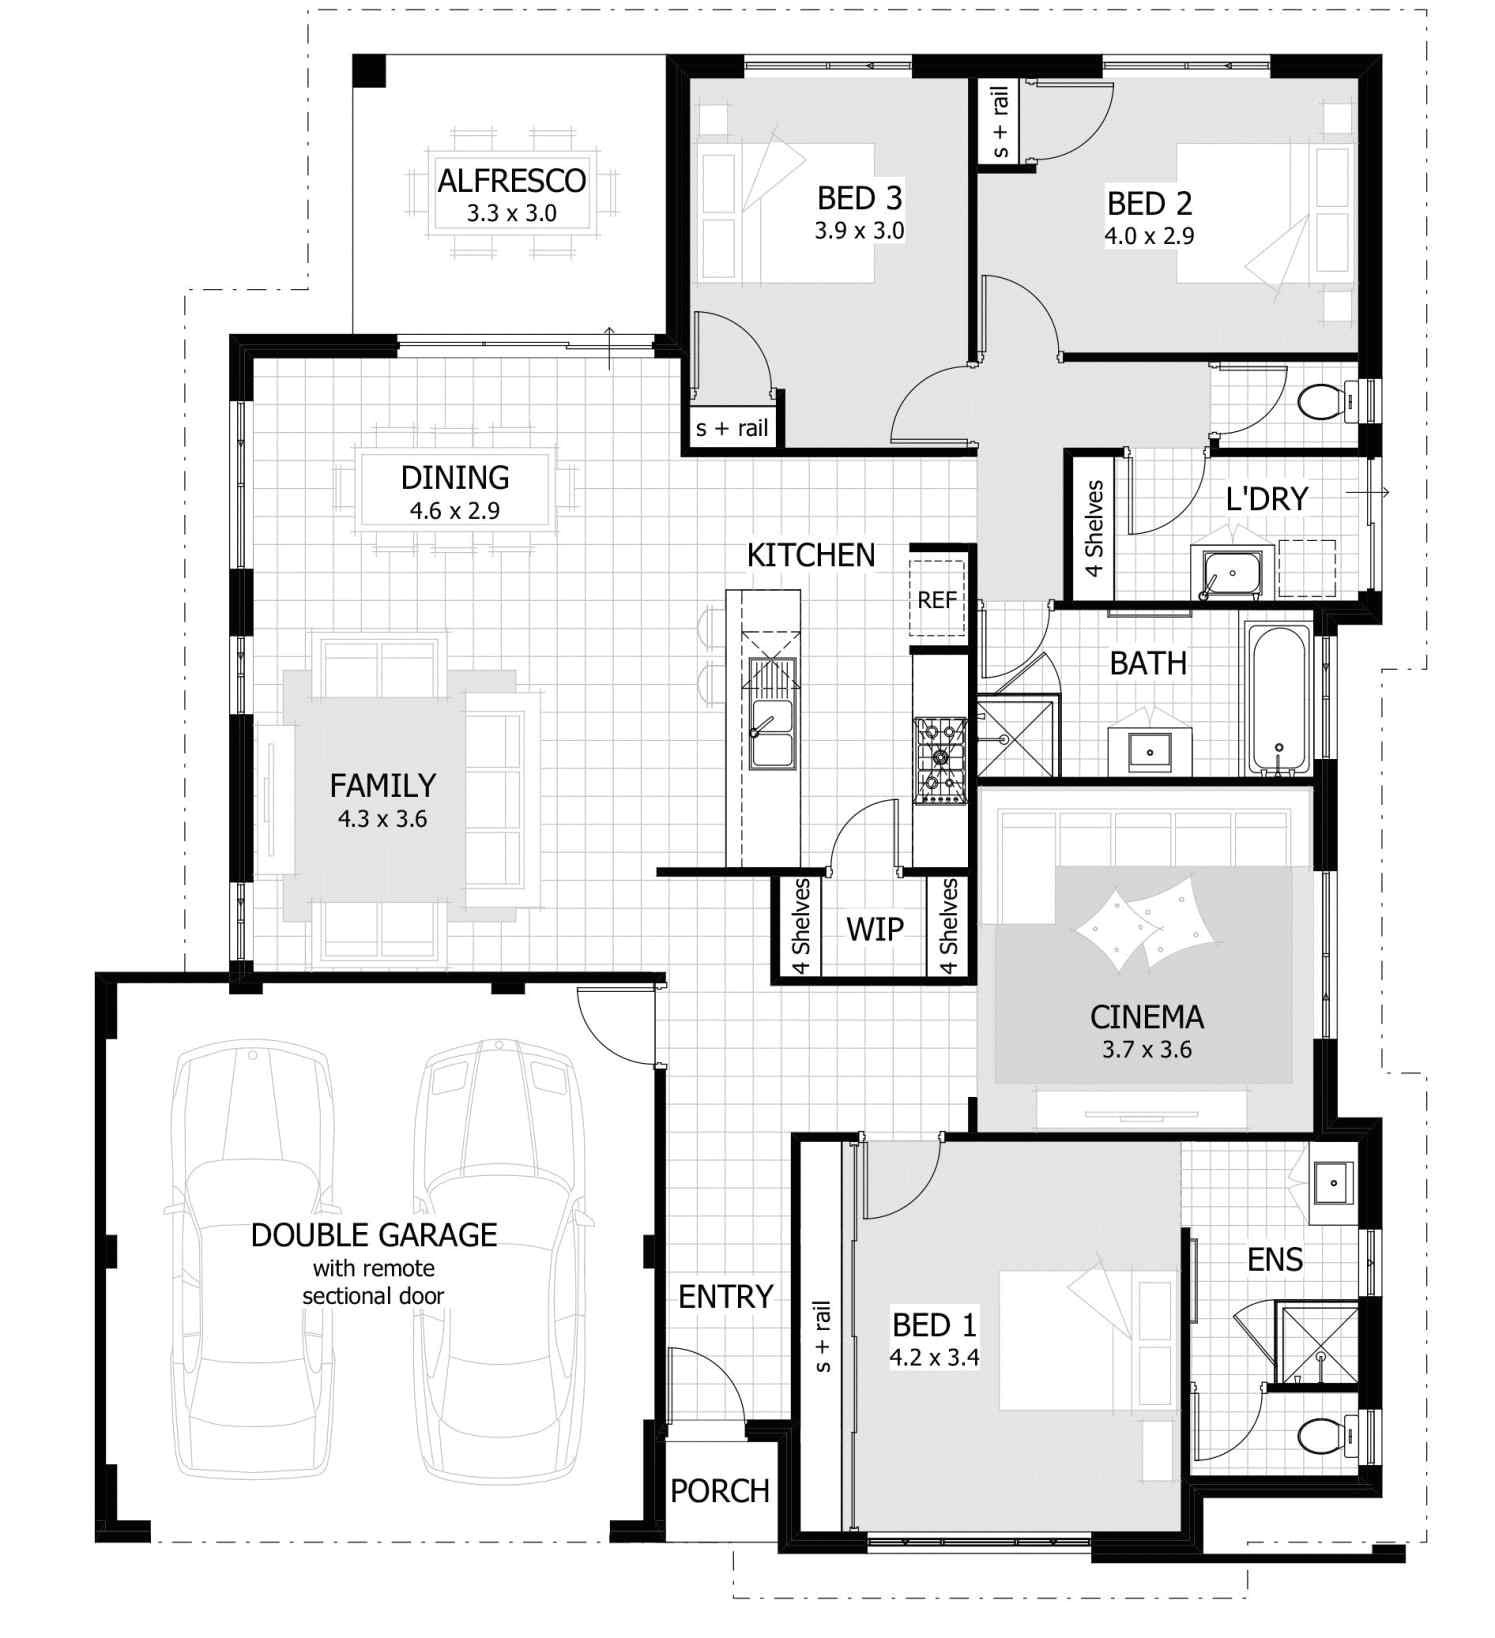 house google search england pinterest french tudor brent gibson classic home design french english farmhouse plans tudor house brent gibson classic home design jpg